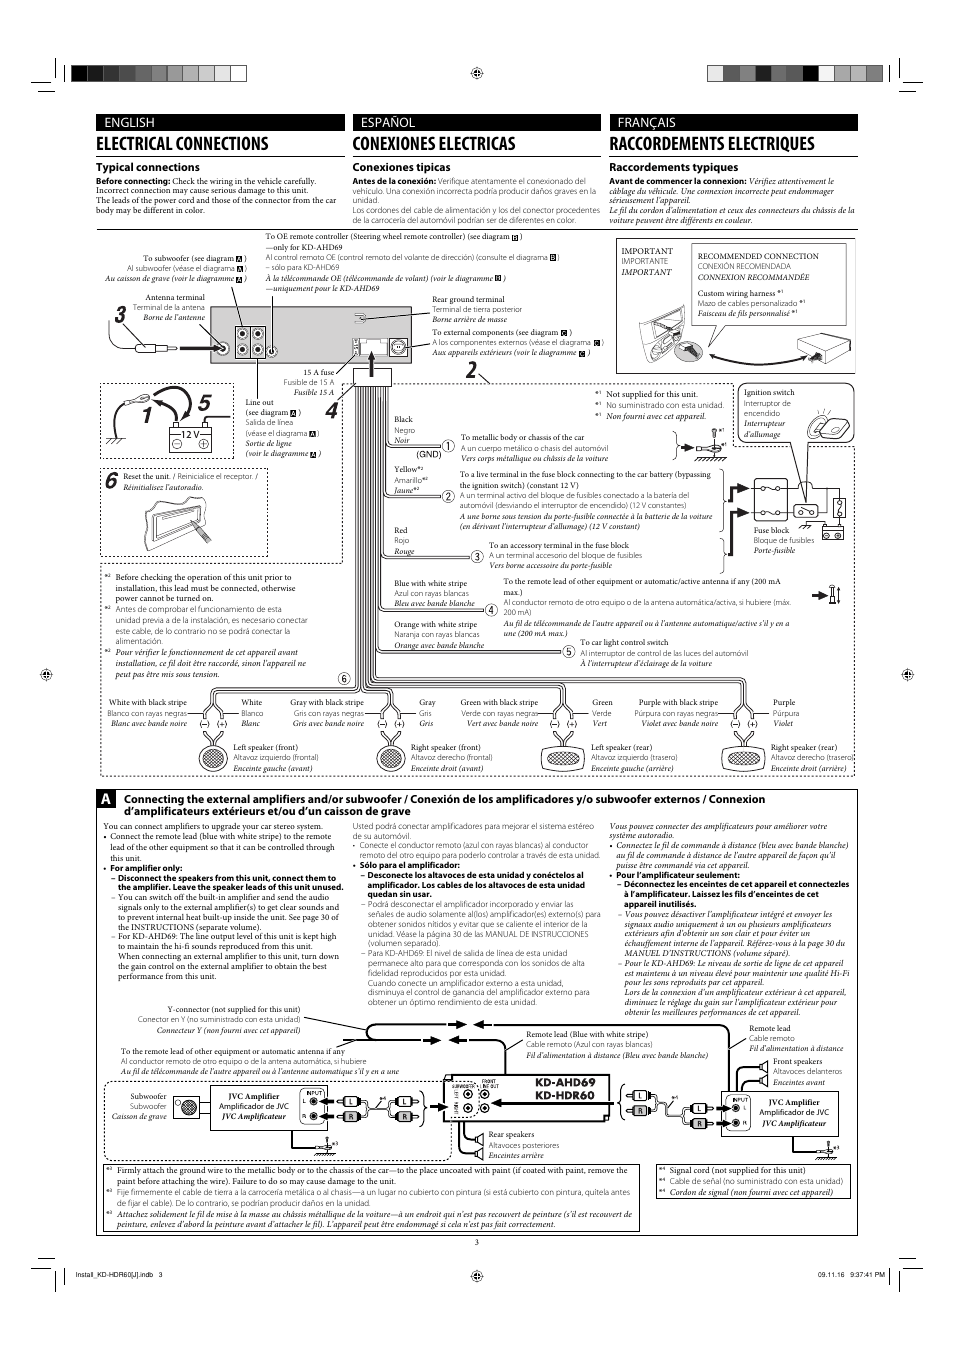 Karr Security Alarm Wiring Diagram further Viper Remote Start Wiring Diagram Inside  pustar For Auto With Starter Diagrams further 103601 Avital 3100 Alarm Install Questions together with Bulldog Security Wiring Diagram also Directed Electronics 451m Wiring Diagram. on viper keyless entry wiring diagram